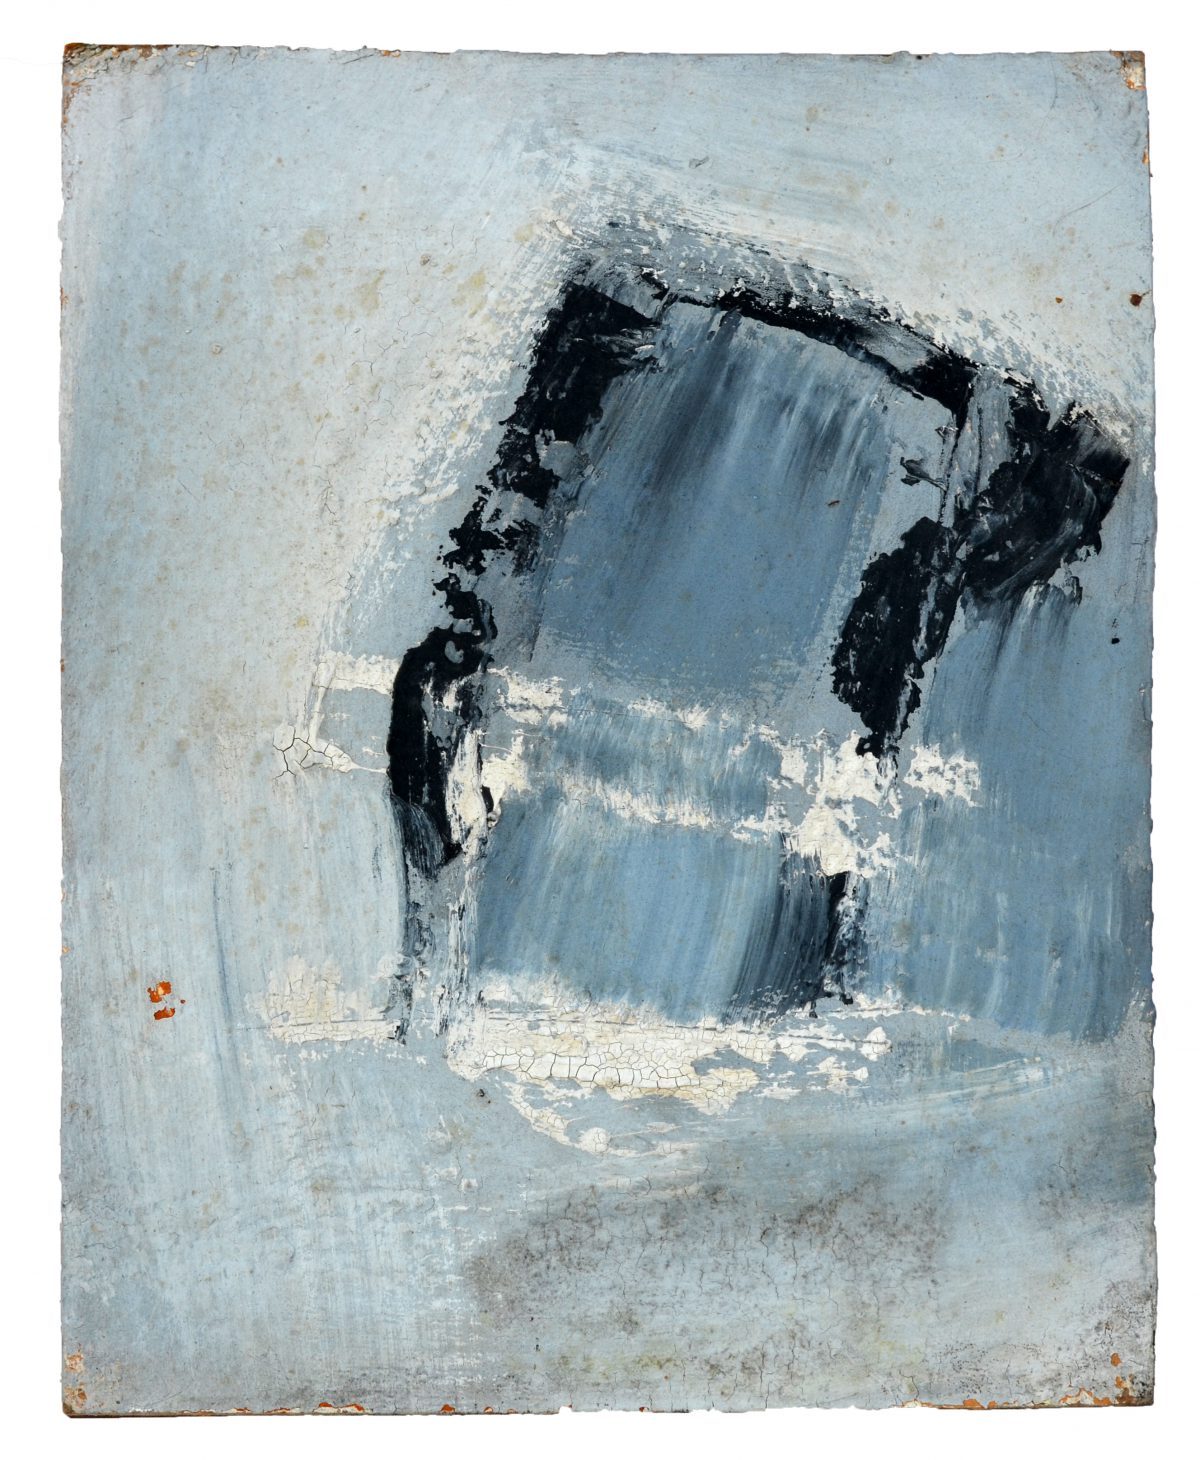 Angel Alonso -Composition bleue - Tempera - 34 X 26,5 cm - 1962